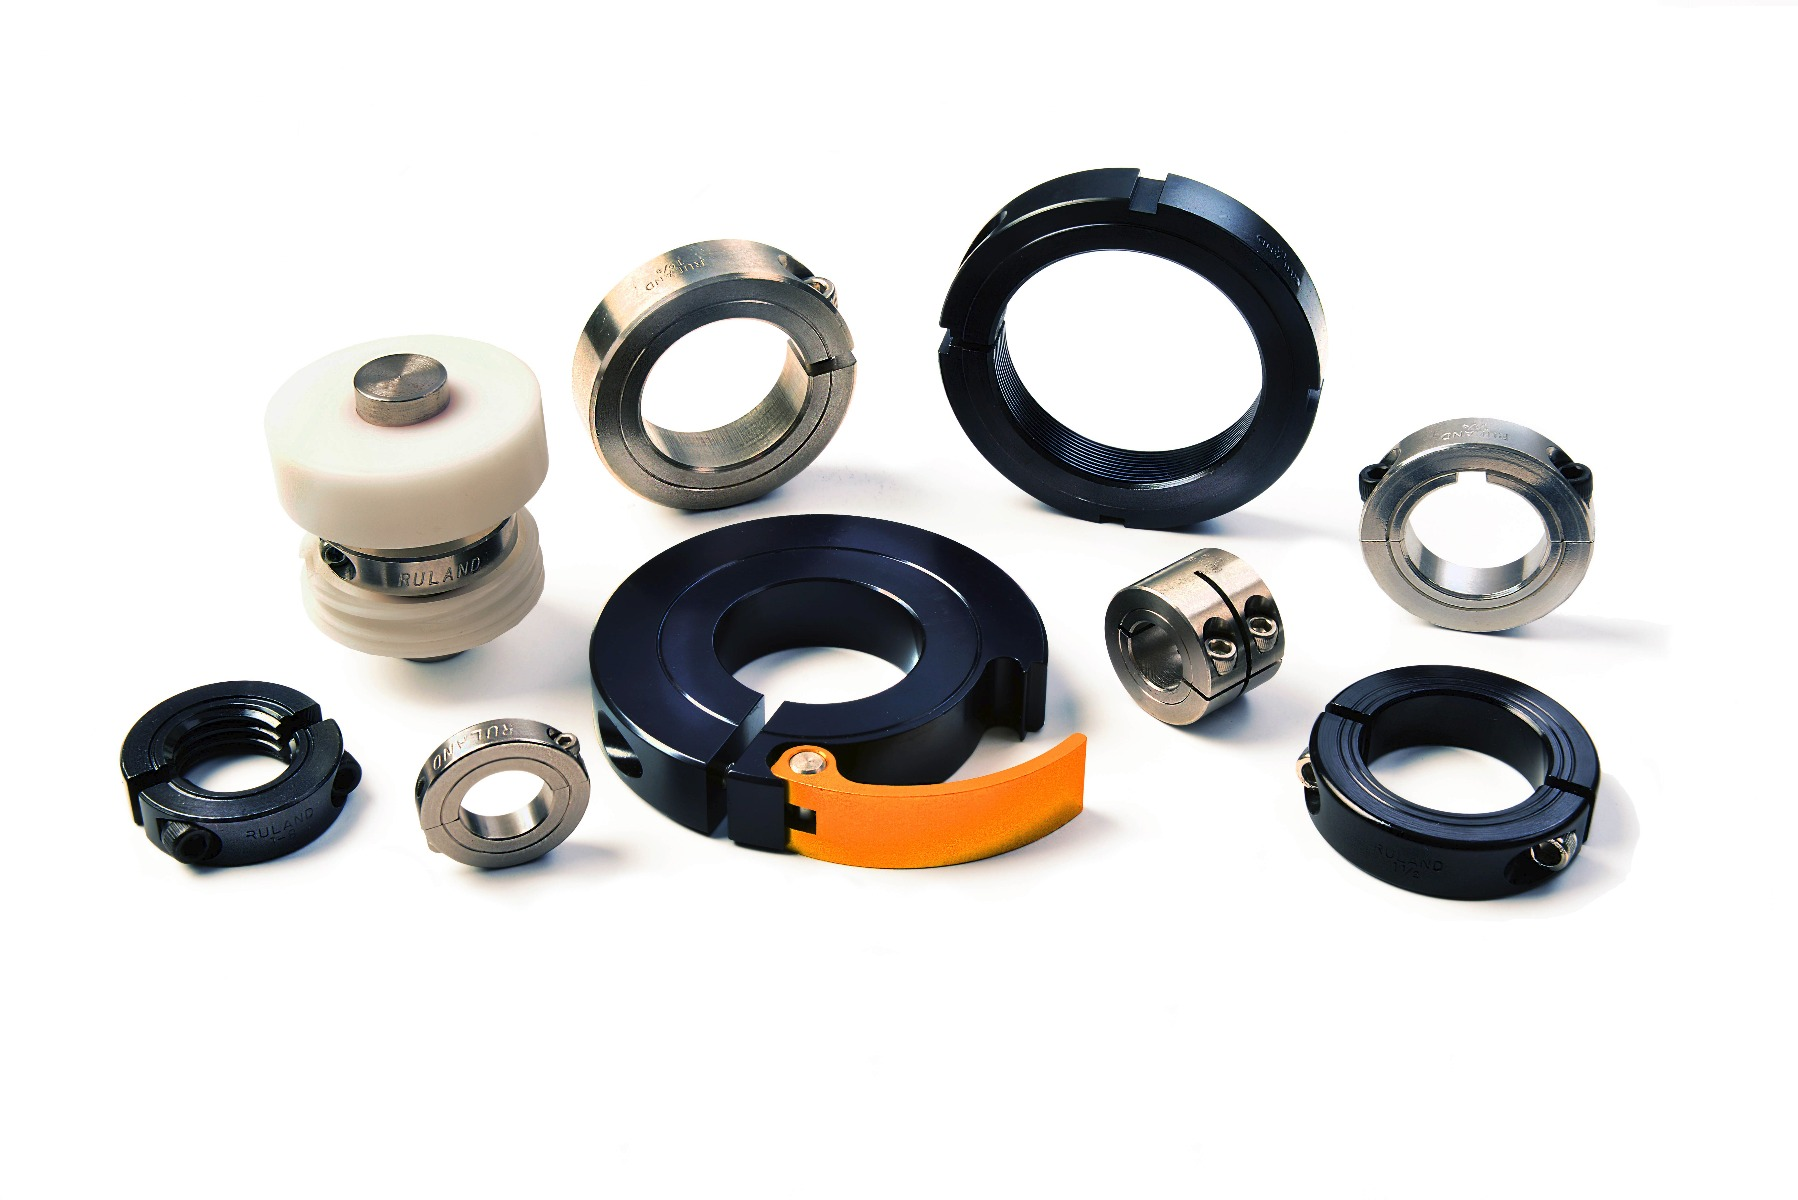 Clamp Style Shaft Collars for Food Equipment